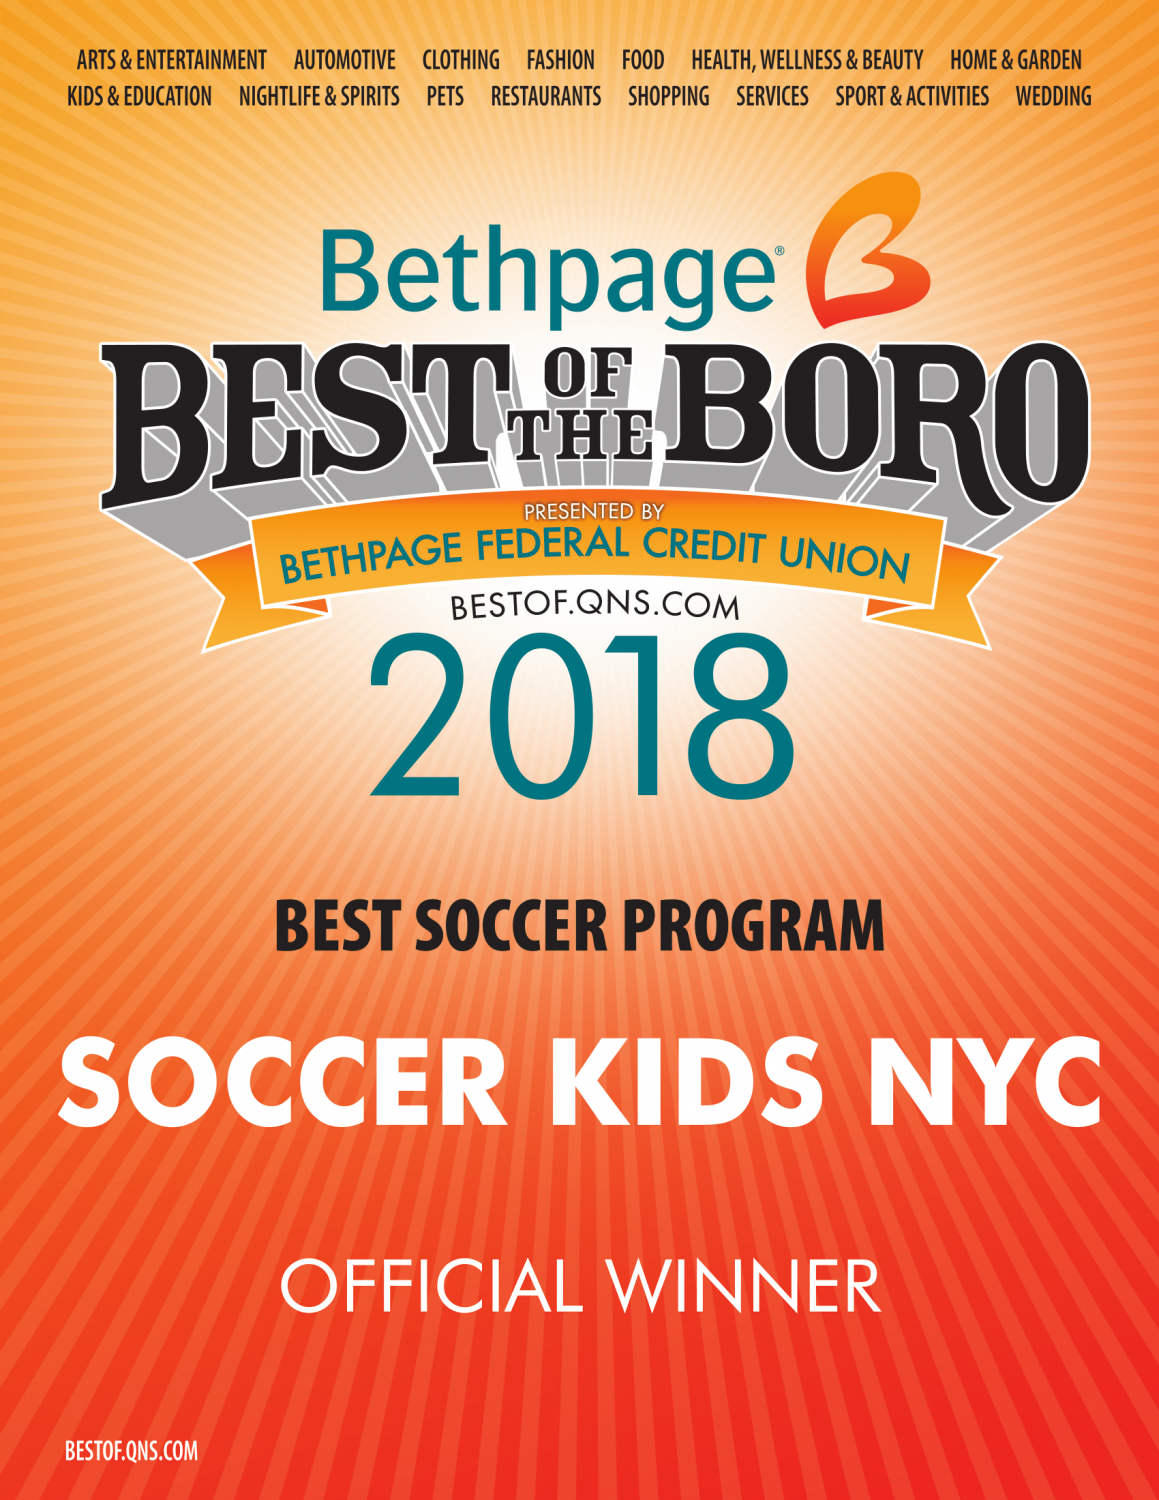 SOCCER_KIDS_NYC_PLAQUE_2018_BOTB_Qns_SA-1